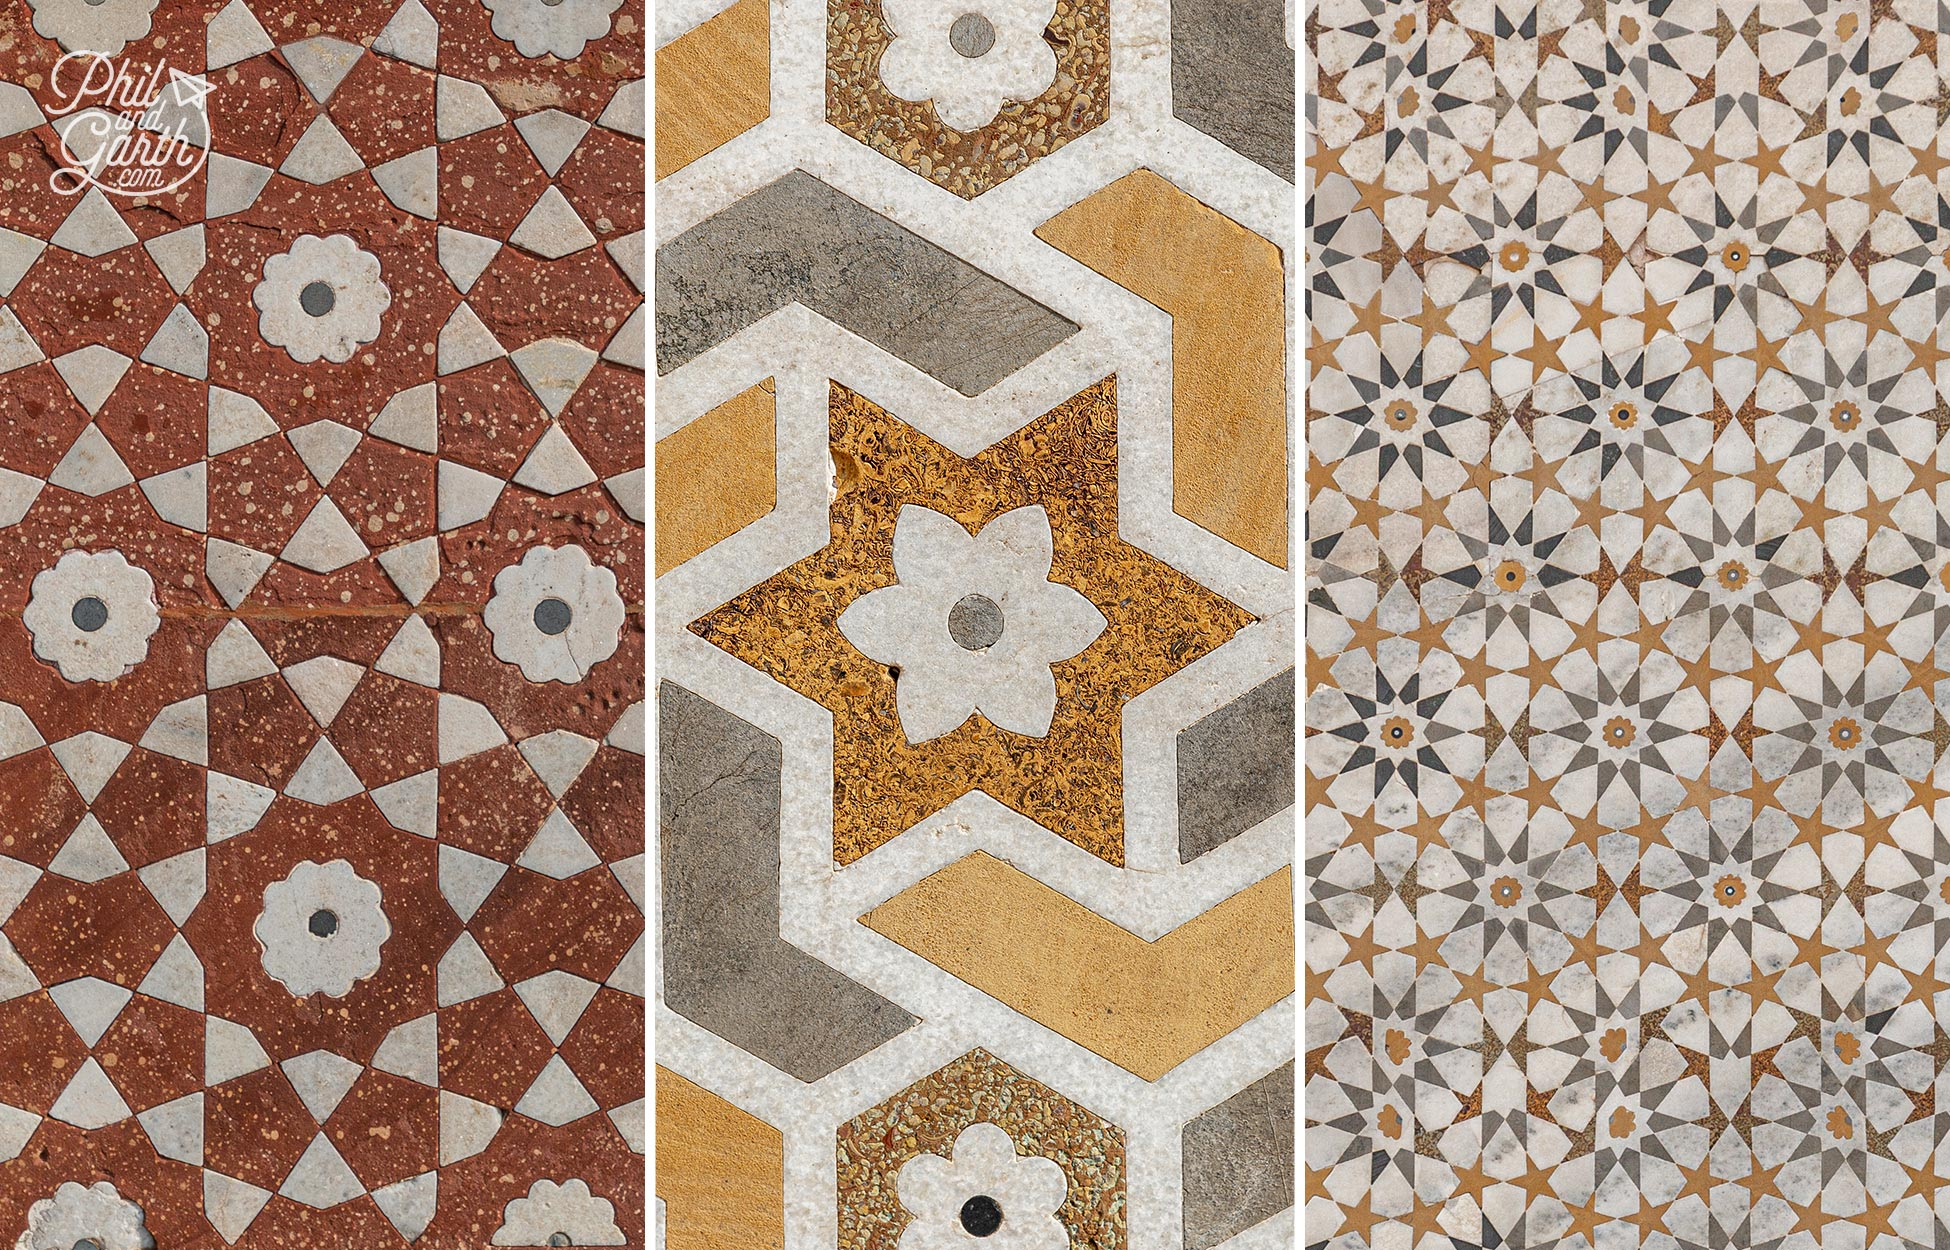 Gorgeous tile patterns and symmetry of the 'Baby Taj Mahal'